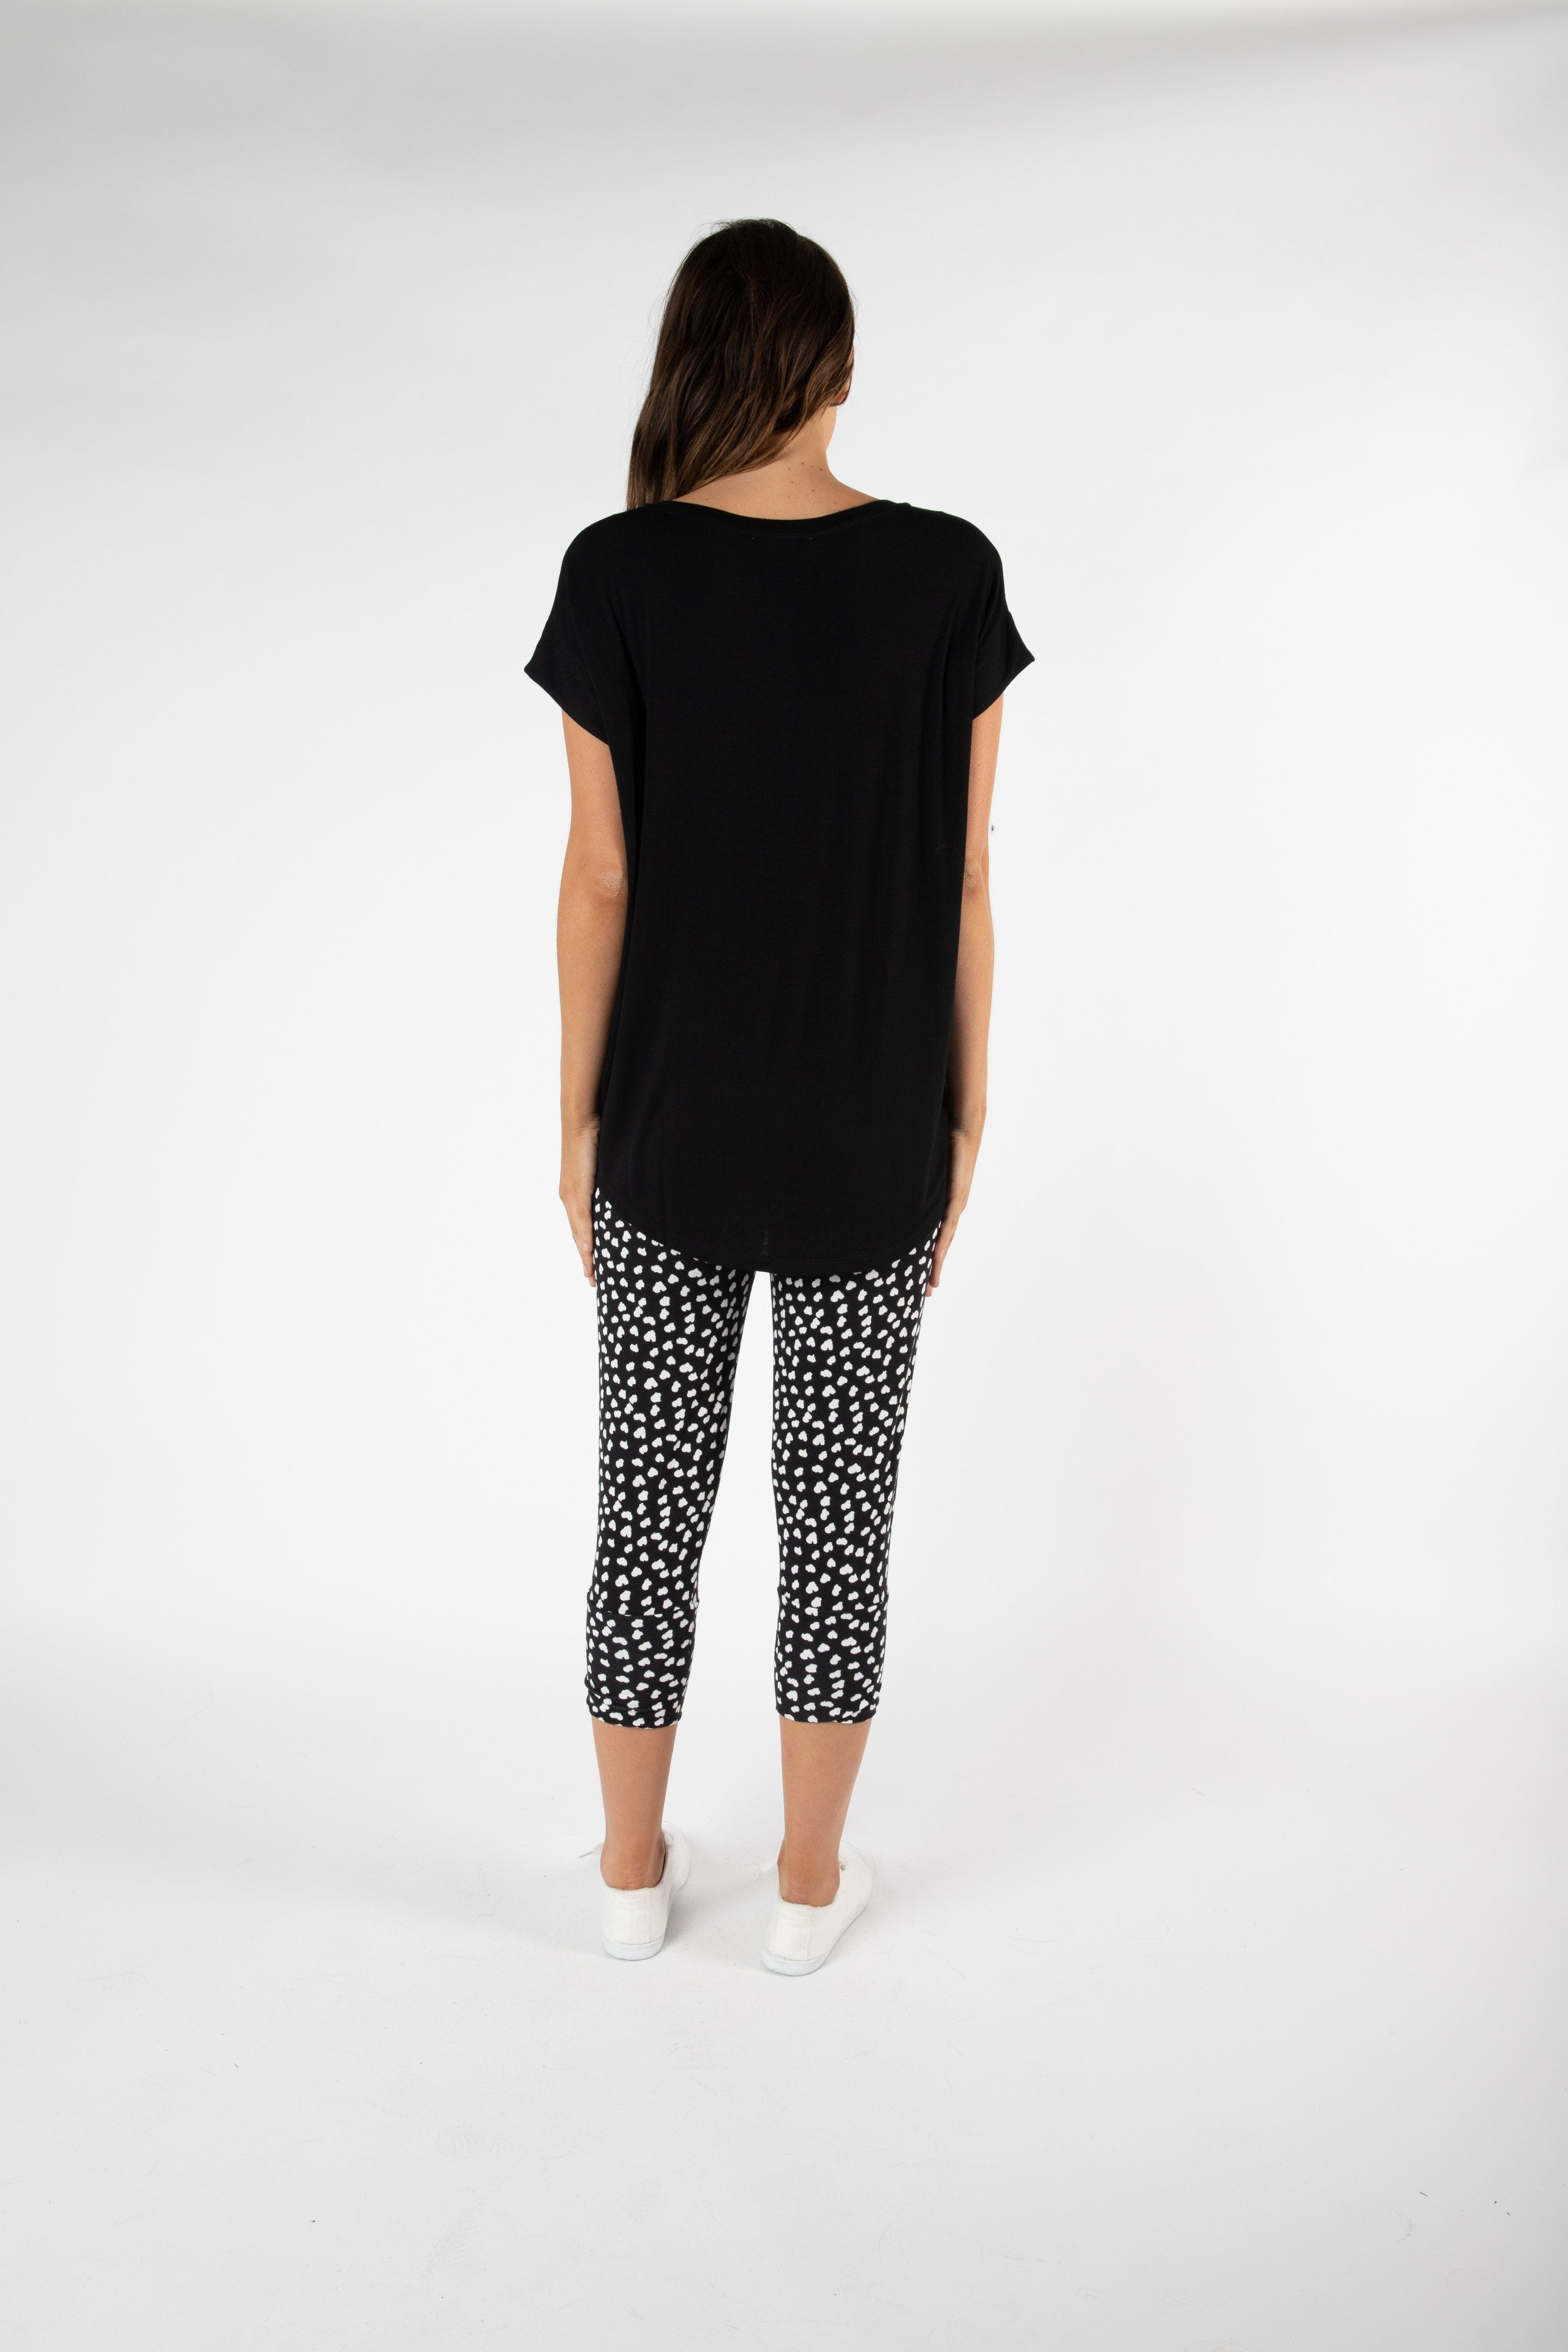 Betty Basics - Toledo Tee - Black Womens Betty Basics